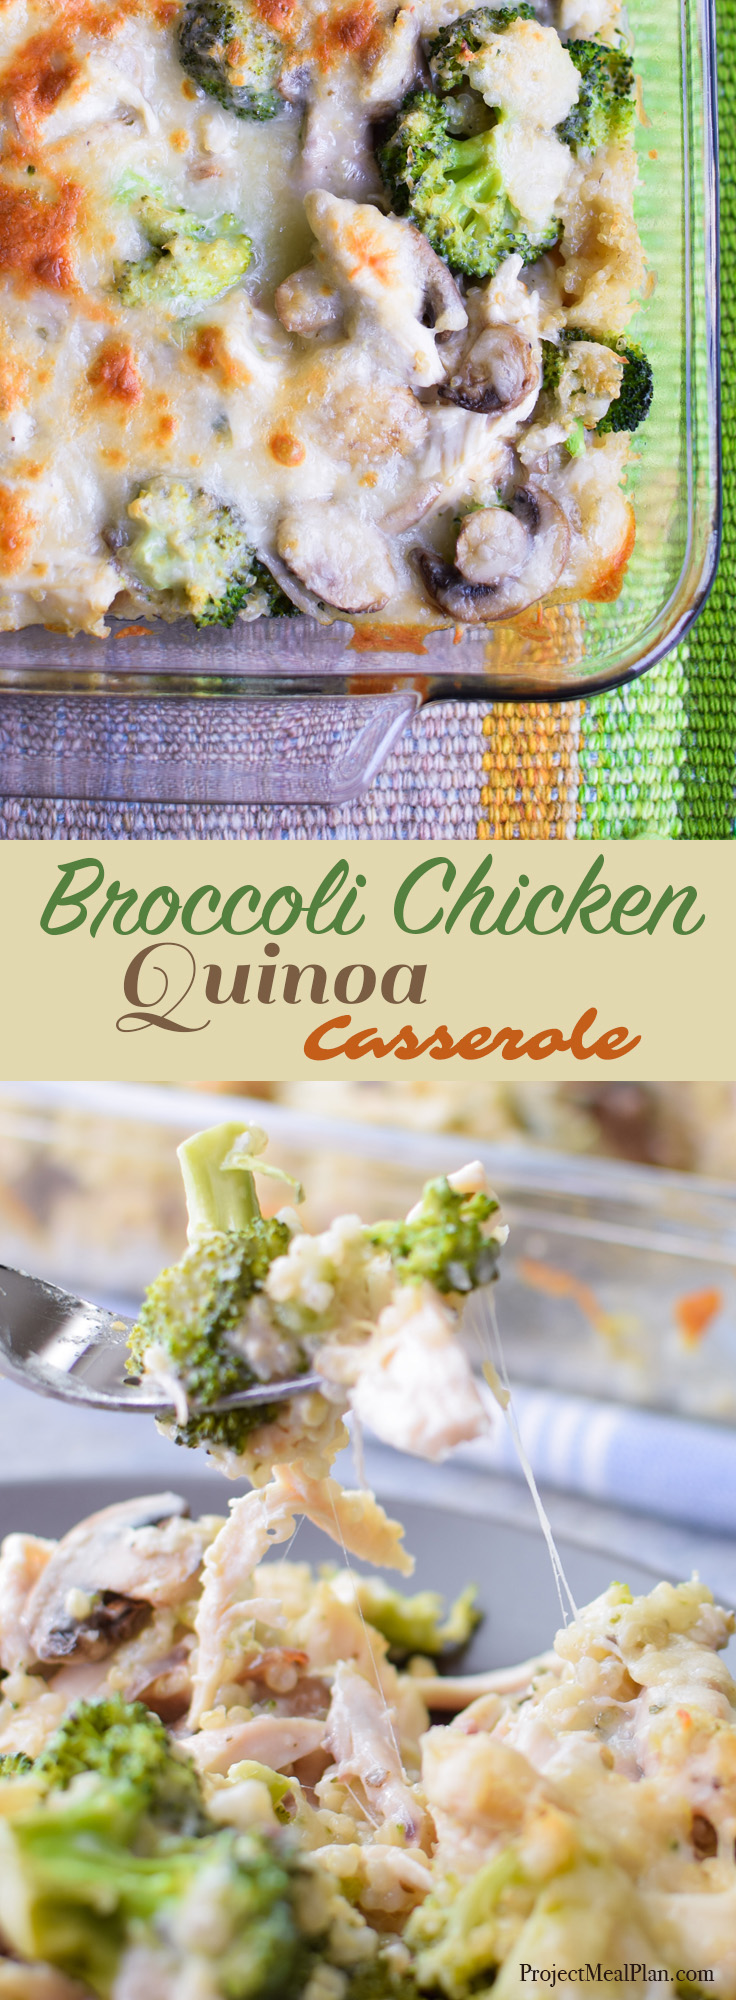 broccoli chicken quinoa casserole recipe - yummy creamy casserole made with rice cooker quinoa, rotisserie chicken and more! - Projectmealplan.com